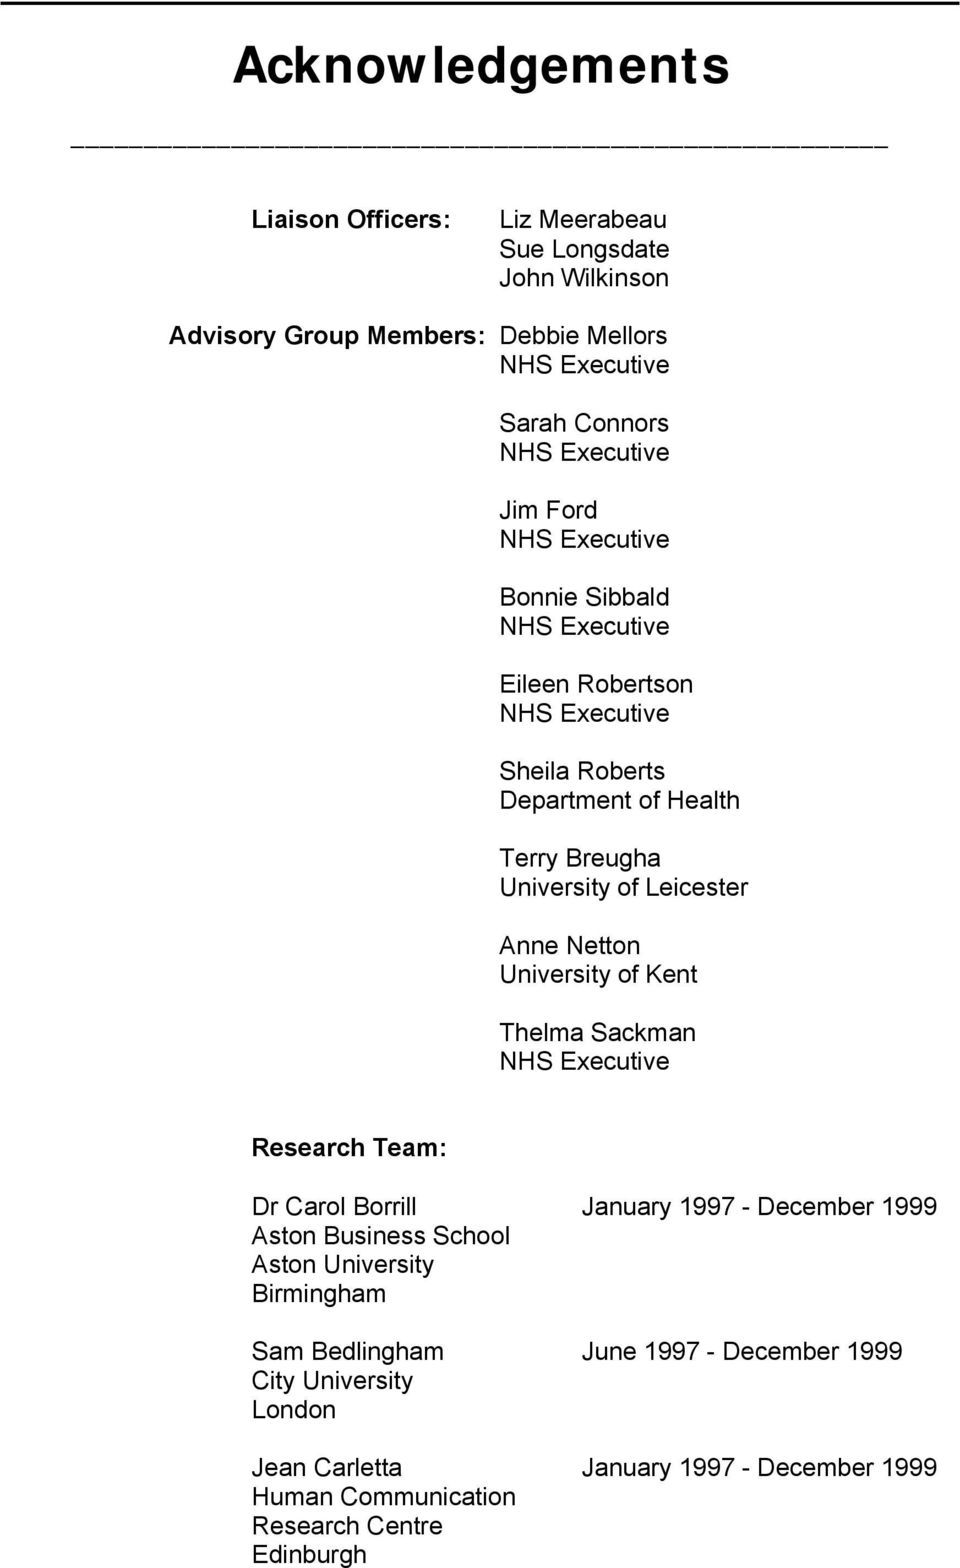 Anne Netton University of Kent Thelma Sackman NHS Executive Research Team: Dr Carol Borrill January 1997 - December 1999 Aston Business School Aston University